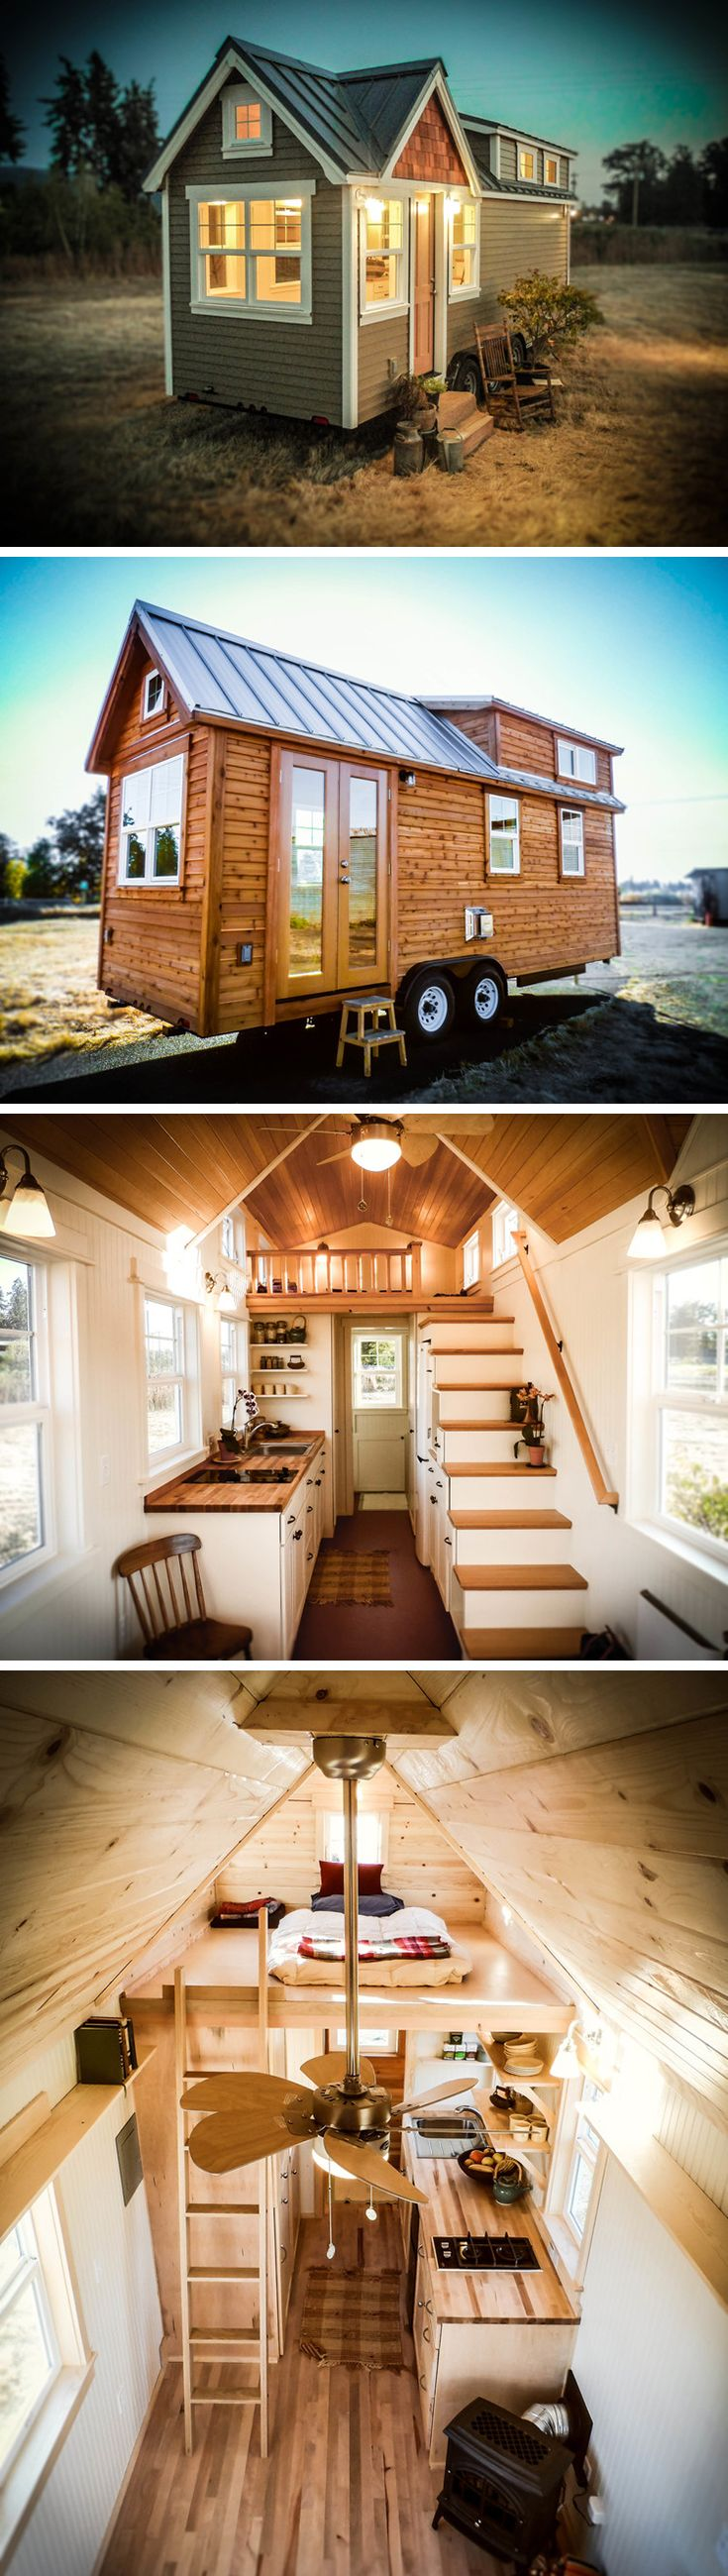 606 best Tiny Homes on Wheels images on Pinterest   Tiny houses ...